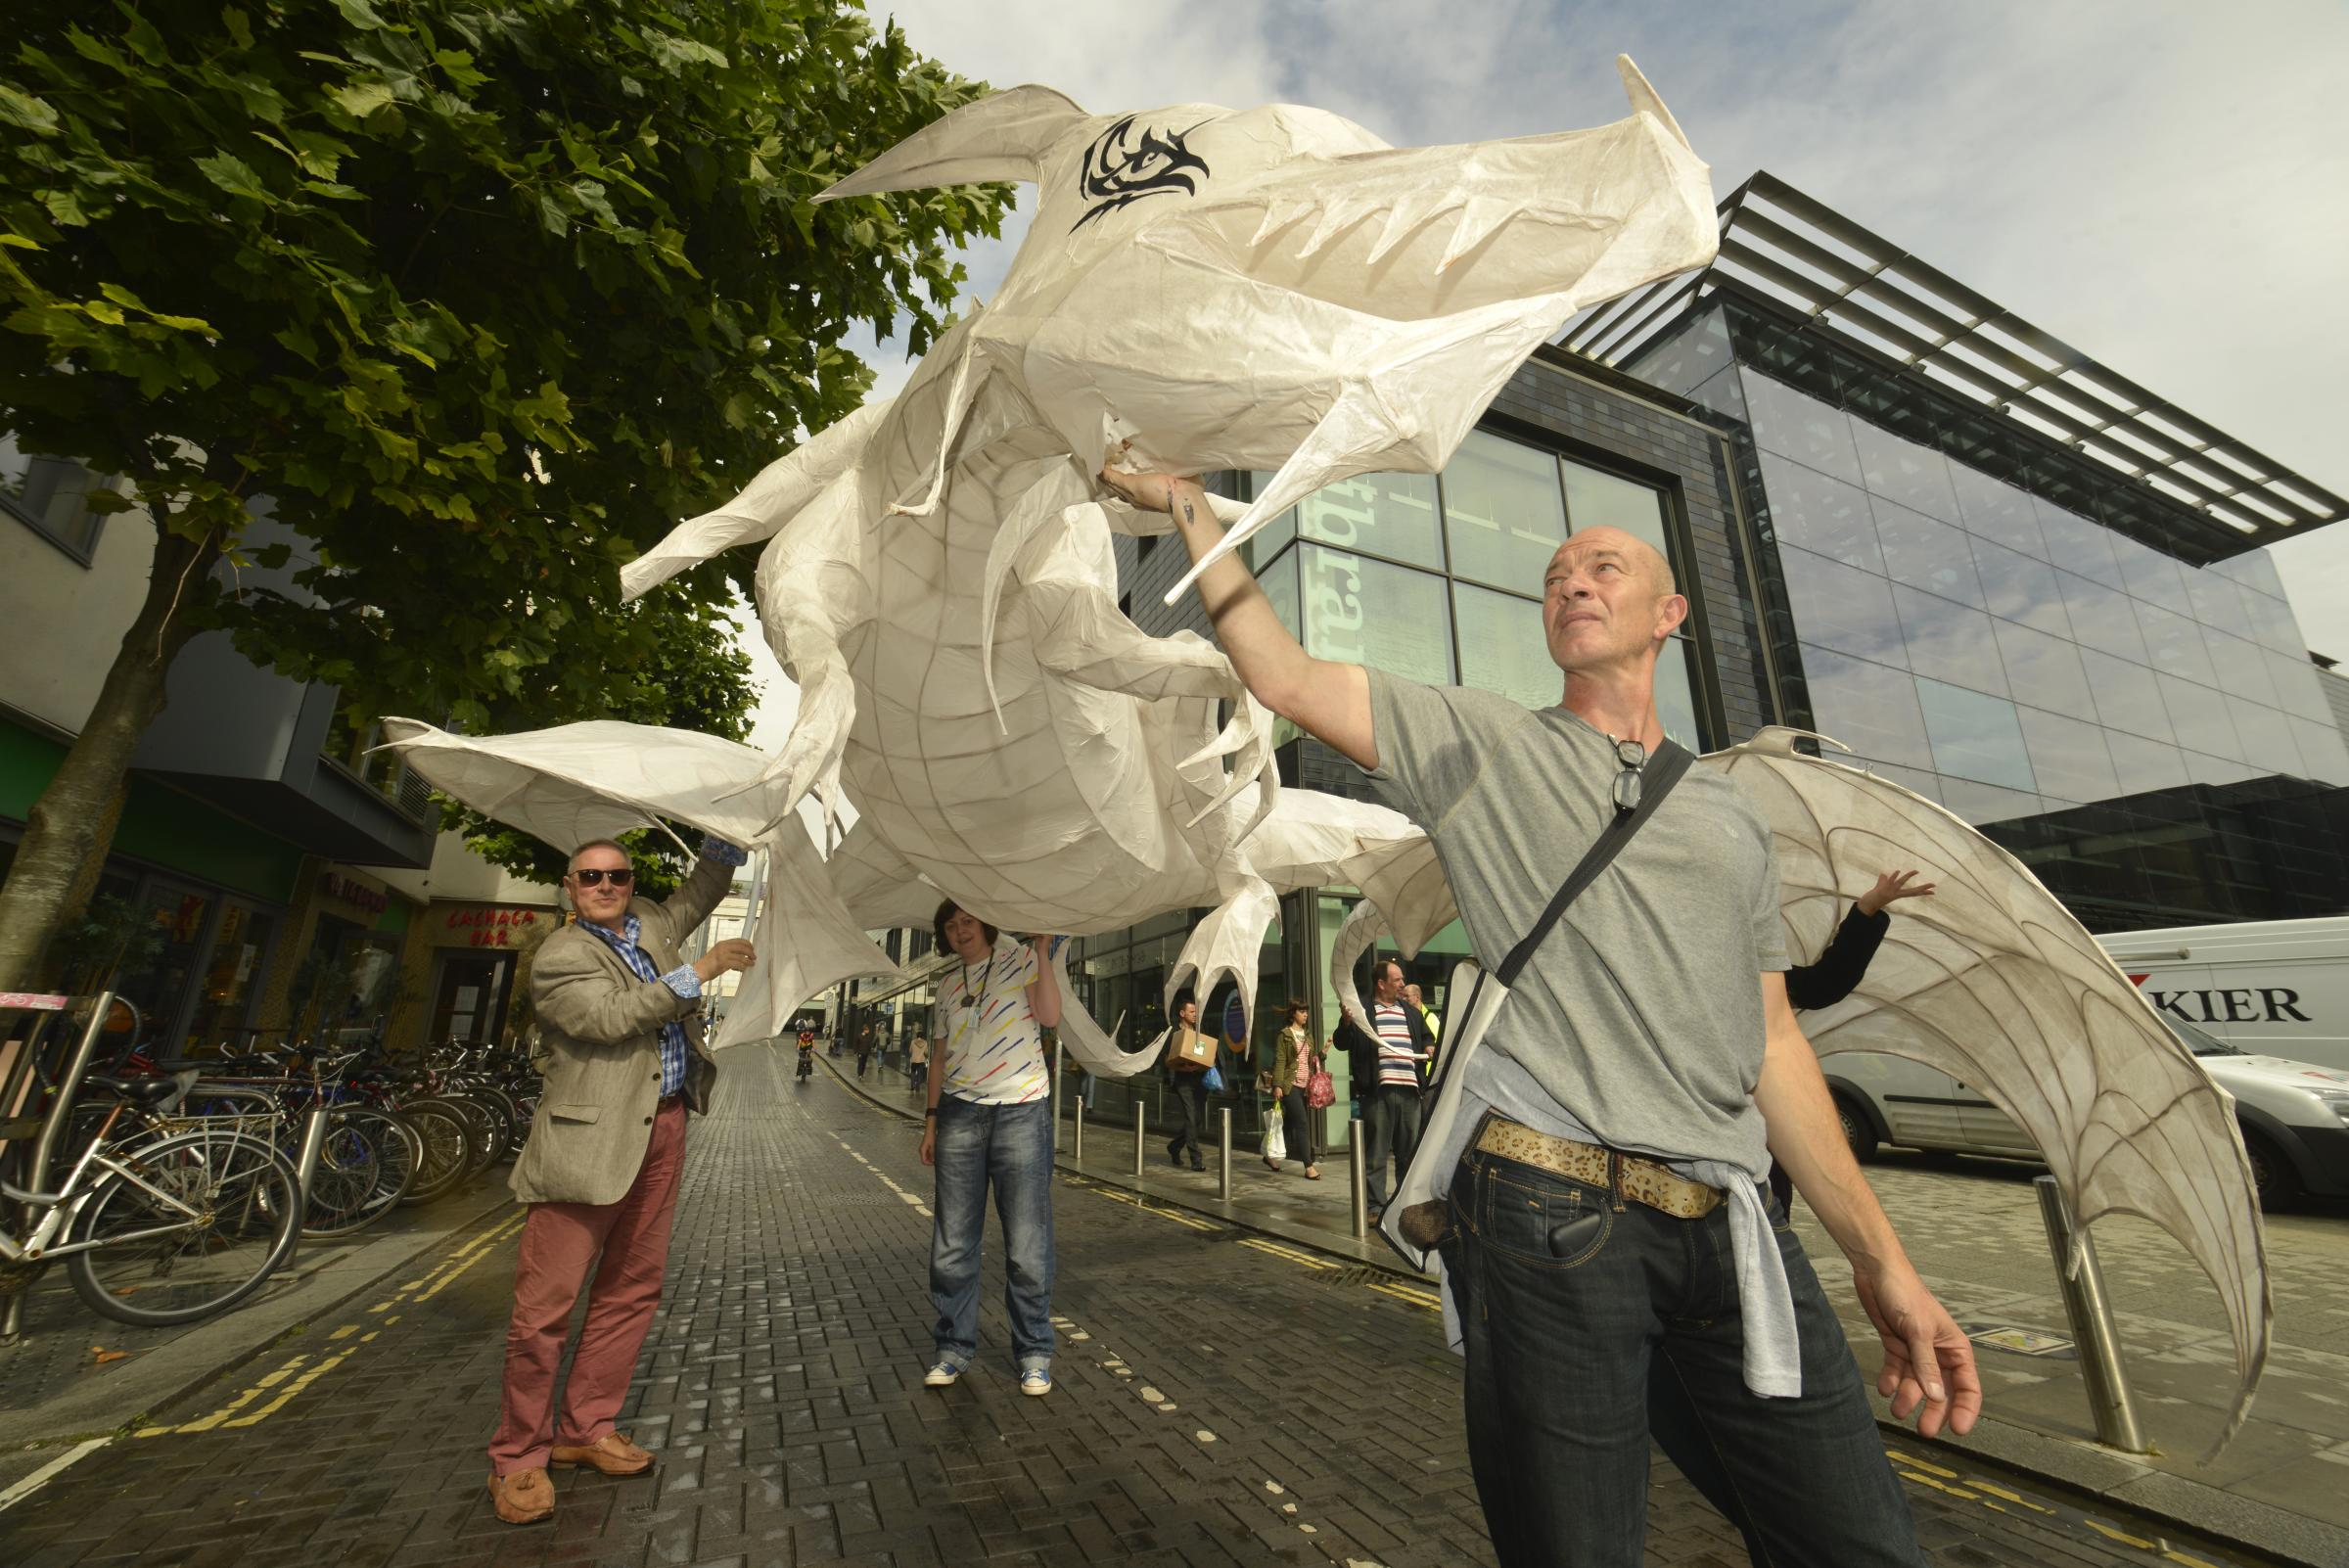 Holy smoke! Giant dragon greets readers at Brighton library event